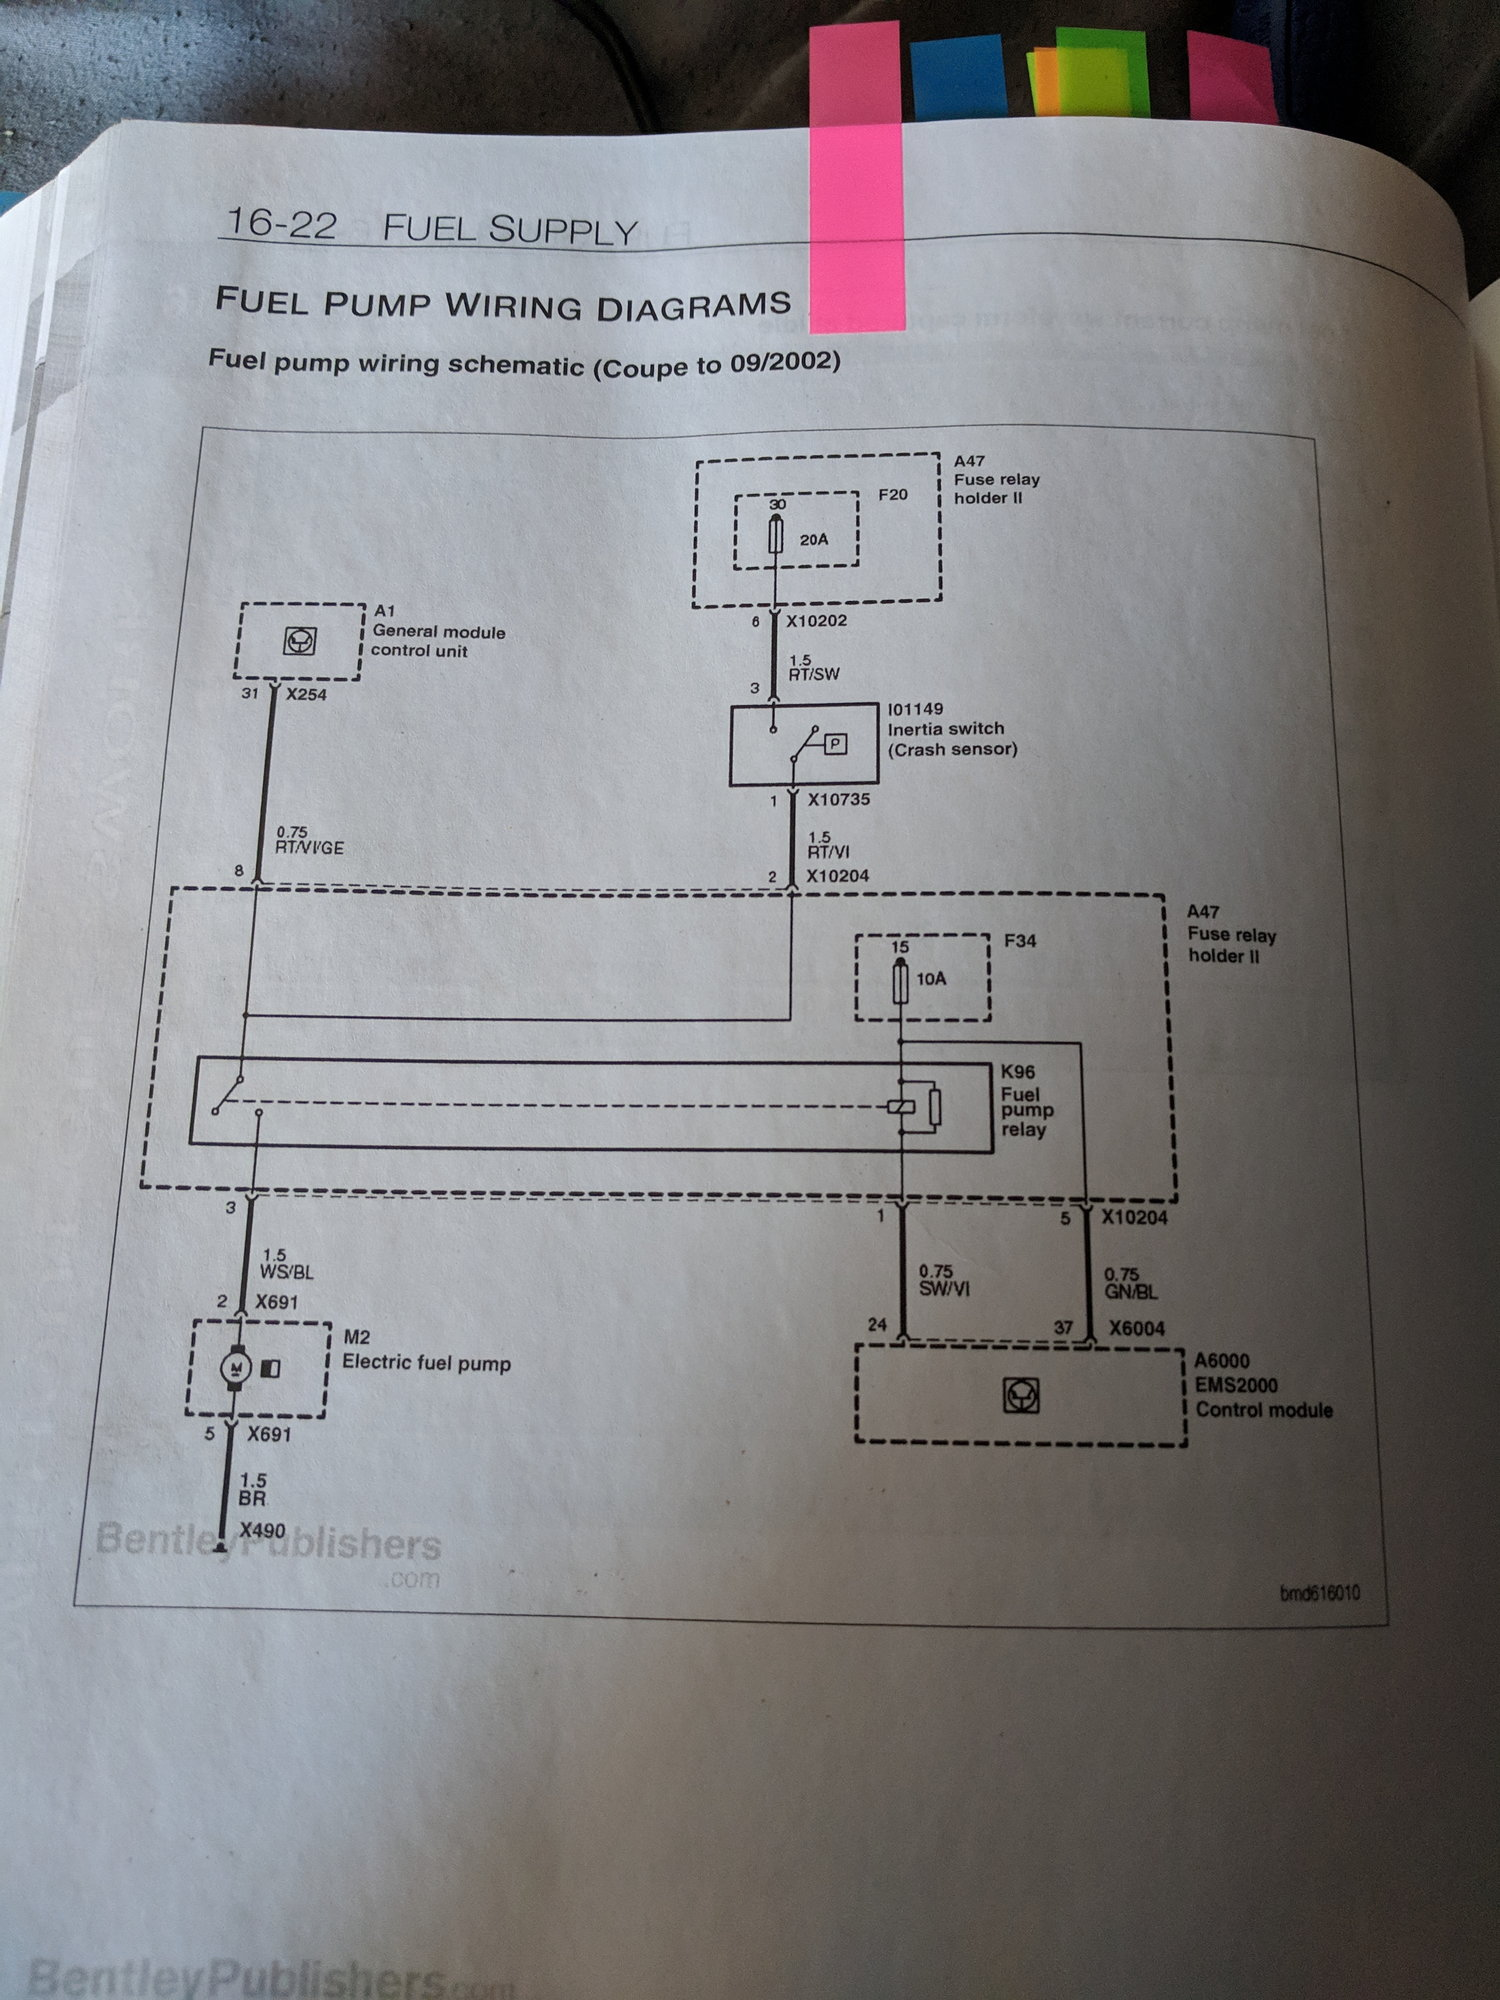 How Do I Read The Fuel Pump Wiring Diagram